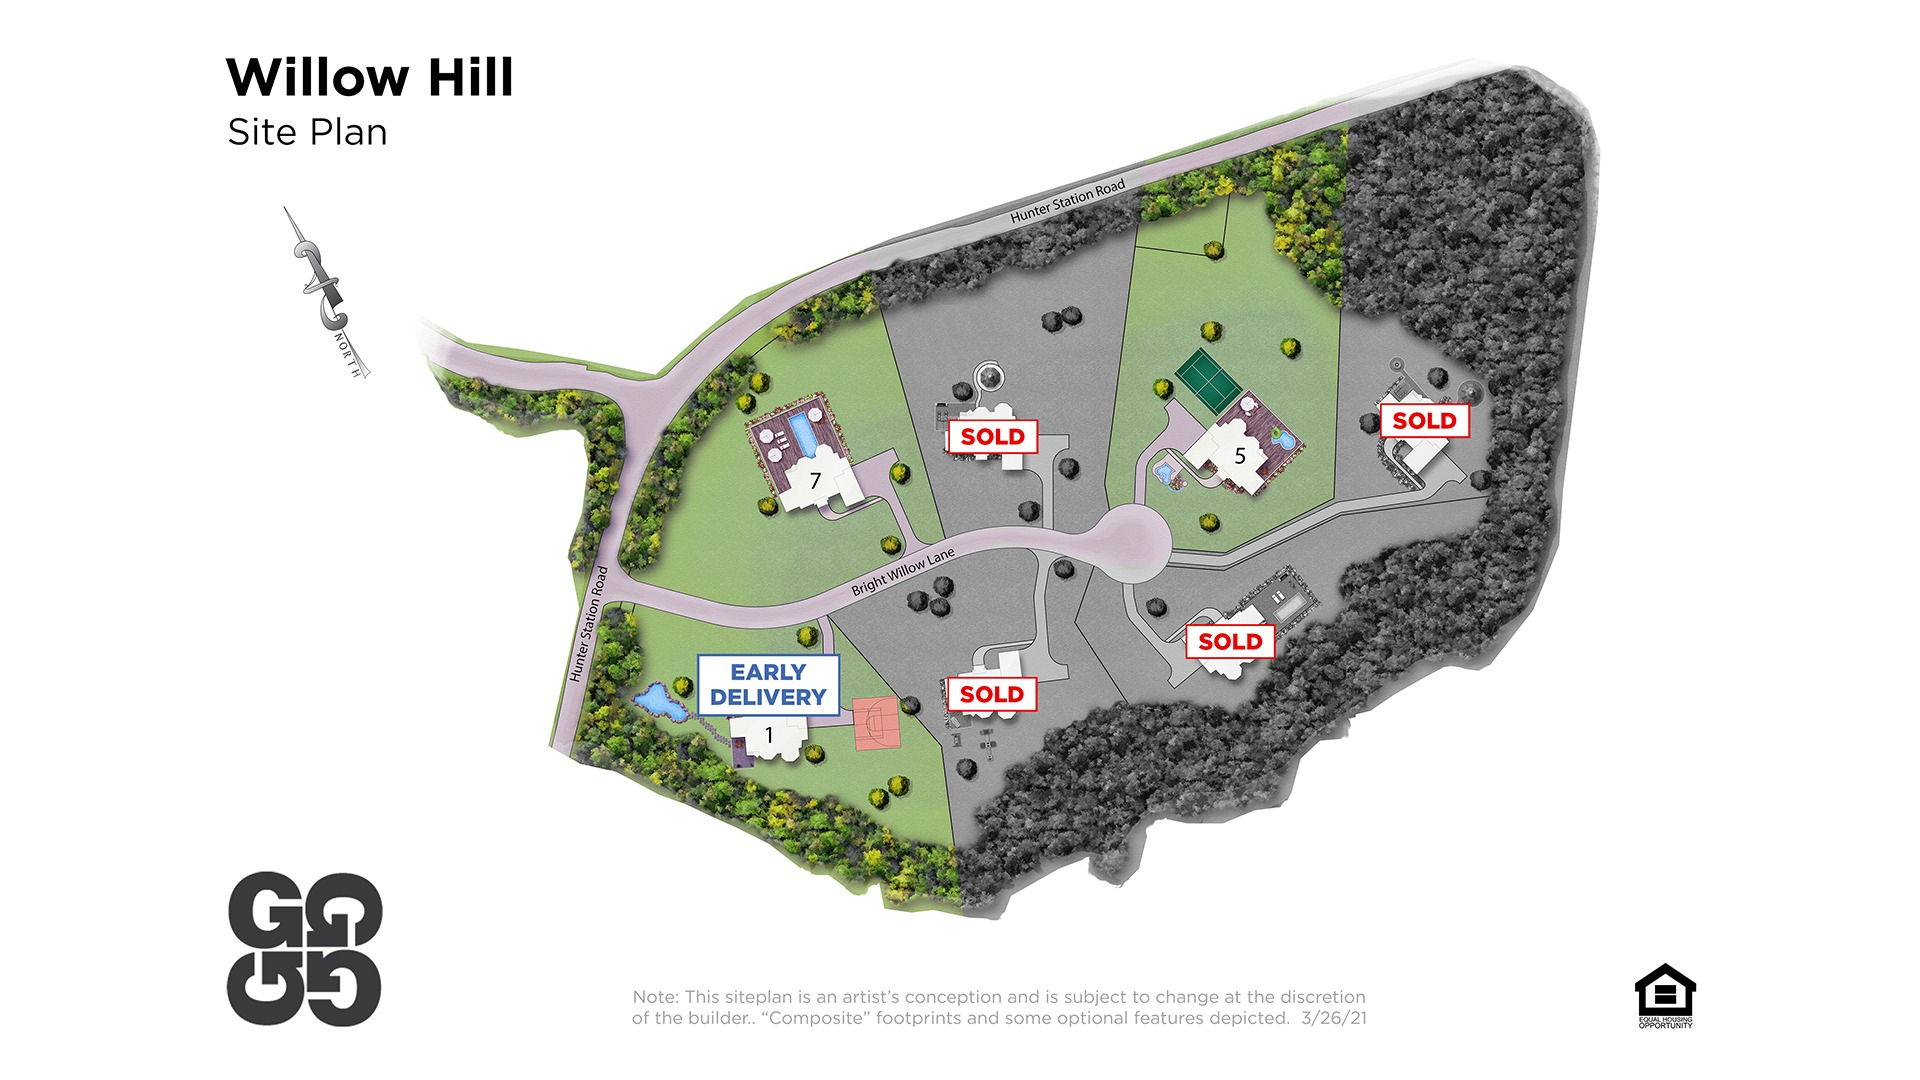 Willow Hill Site Plan - Solds